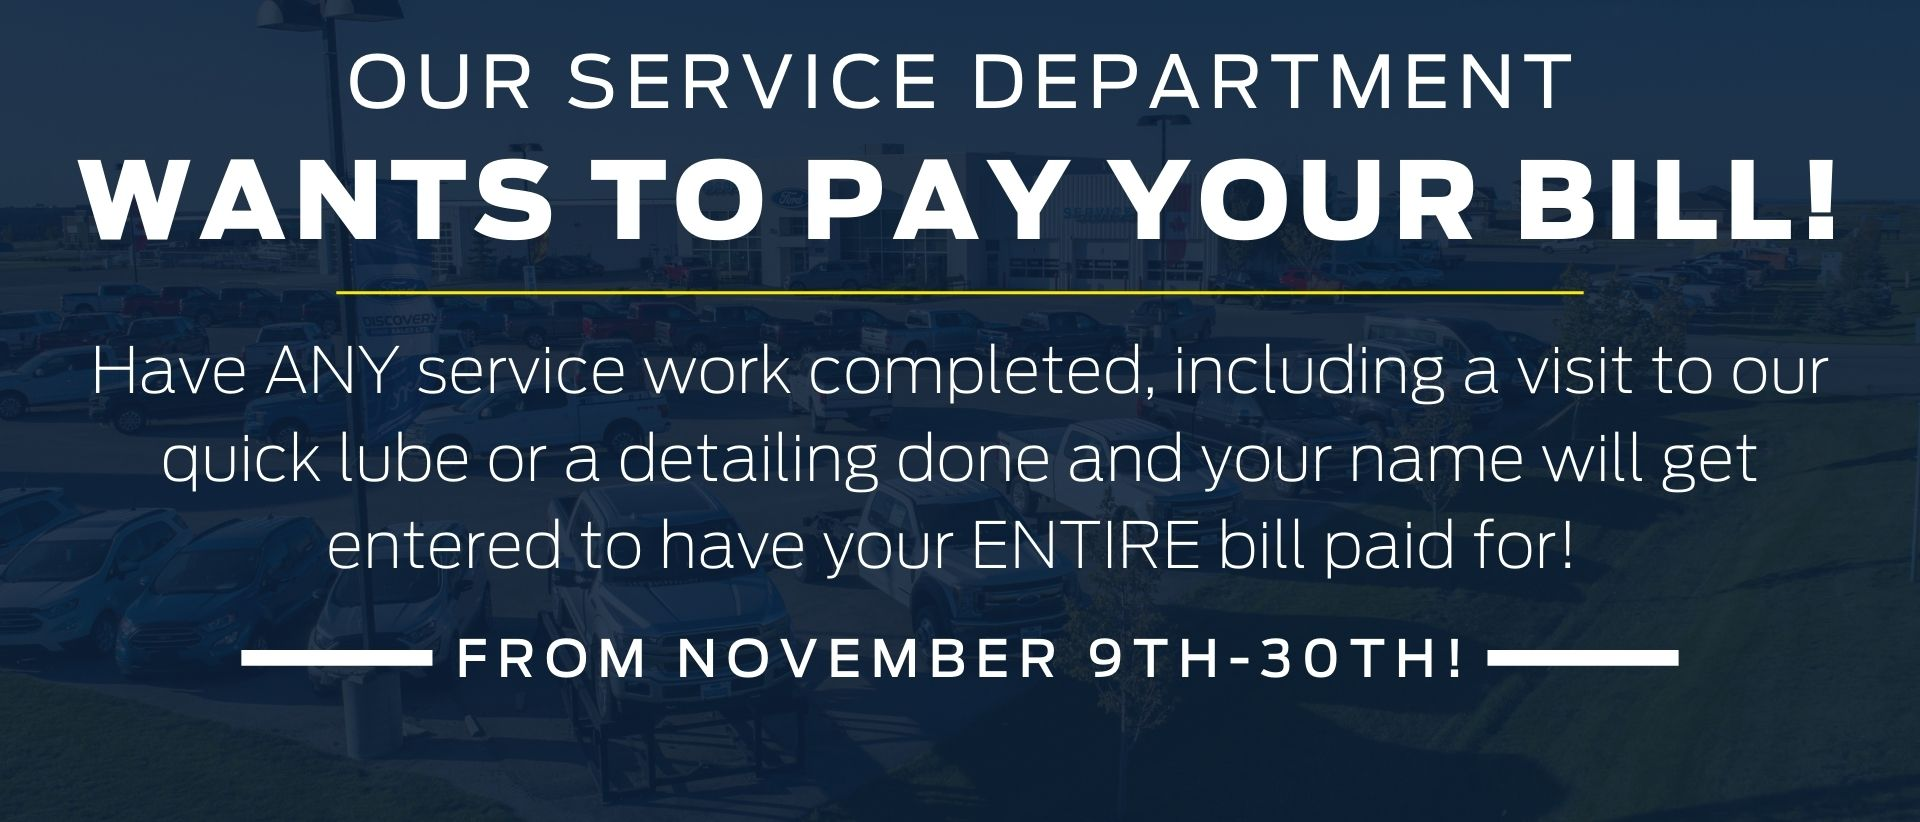 Copy Of Copy Of Our Service Department Wants To Pay Your Bill!